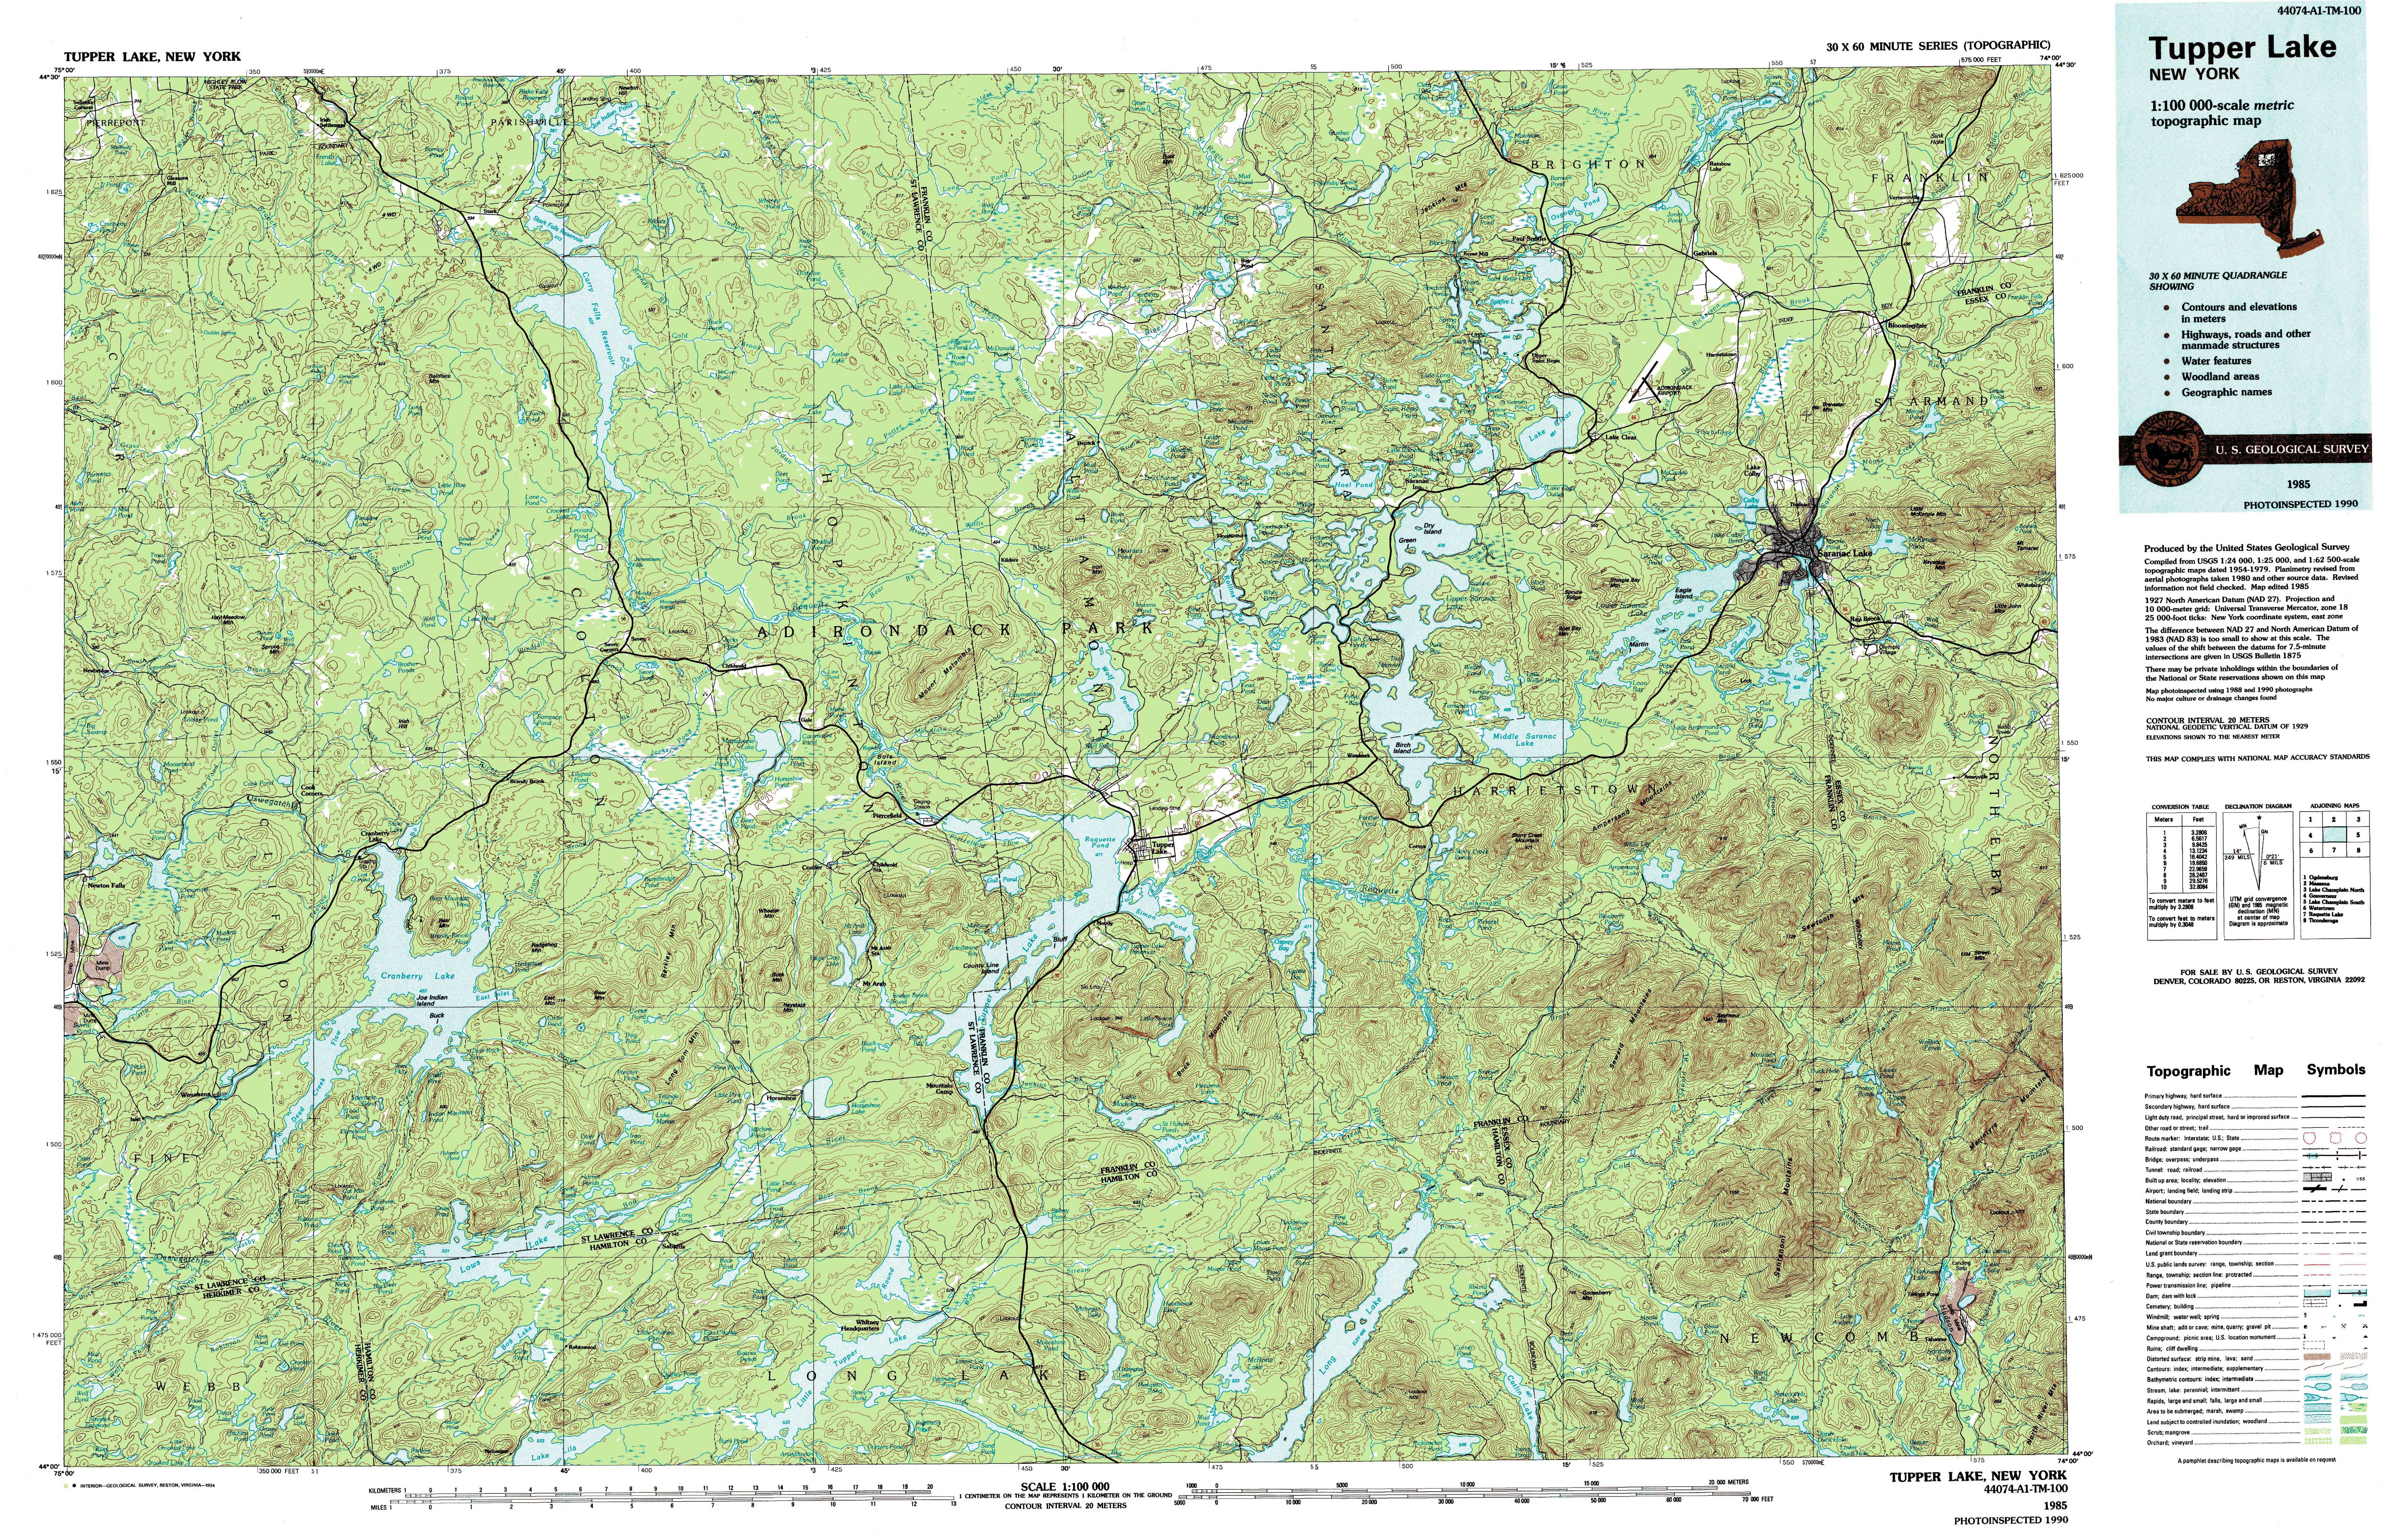 New York Topo Maps Topographic Maps - Topographic map of eastern us